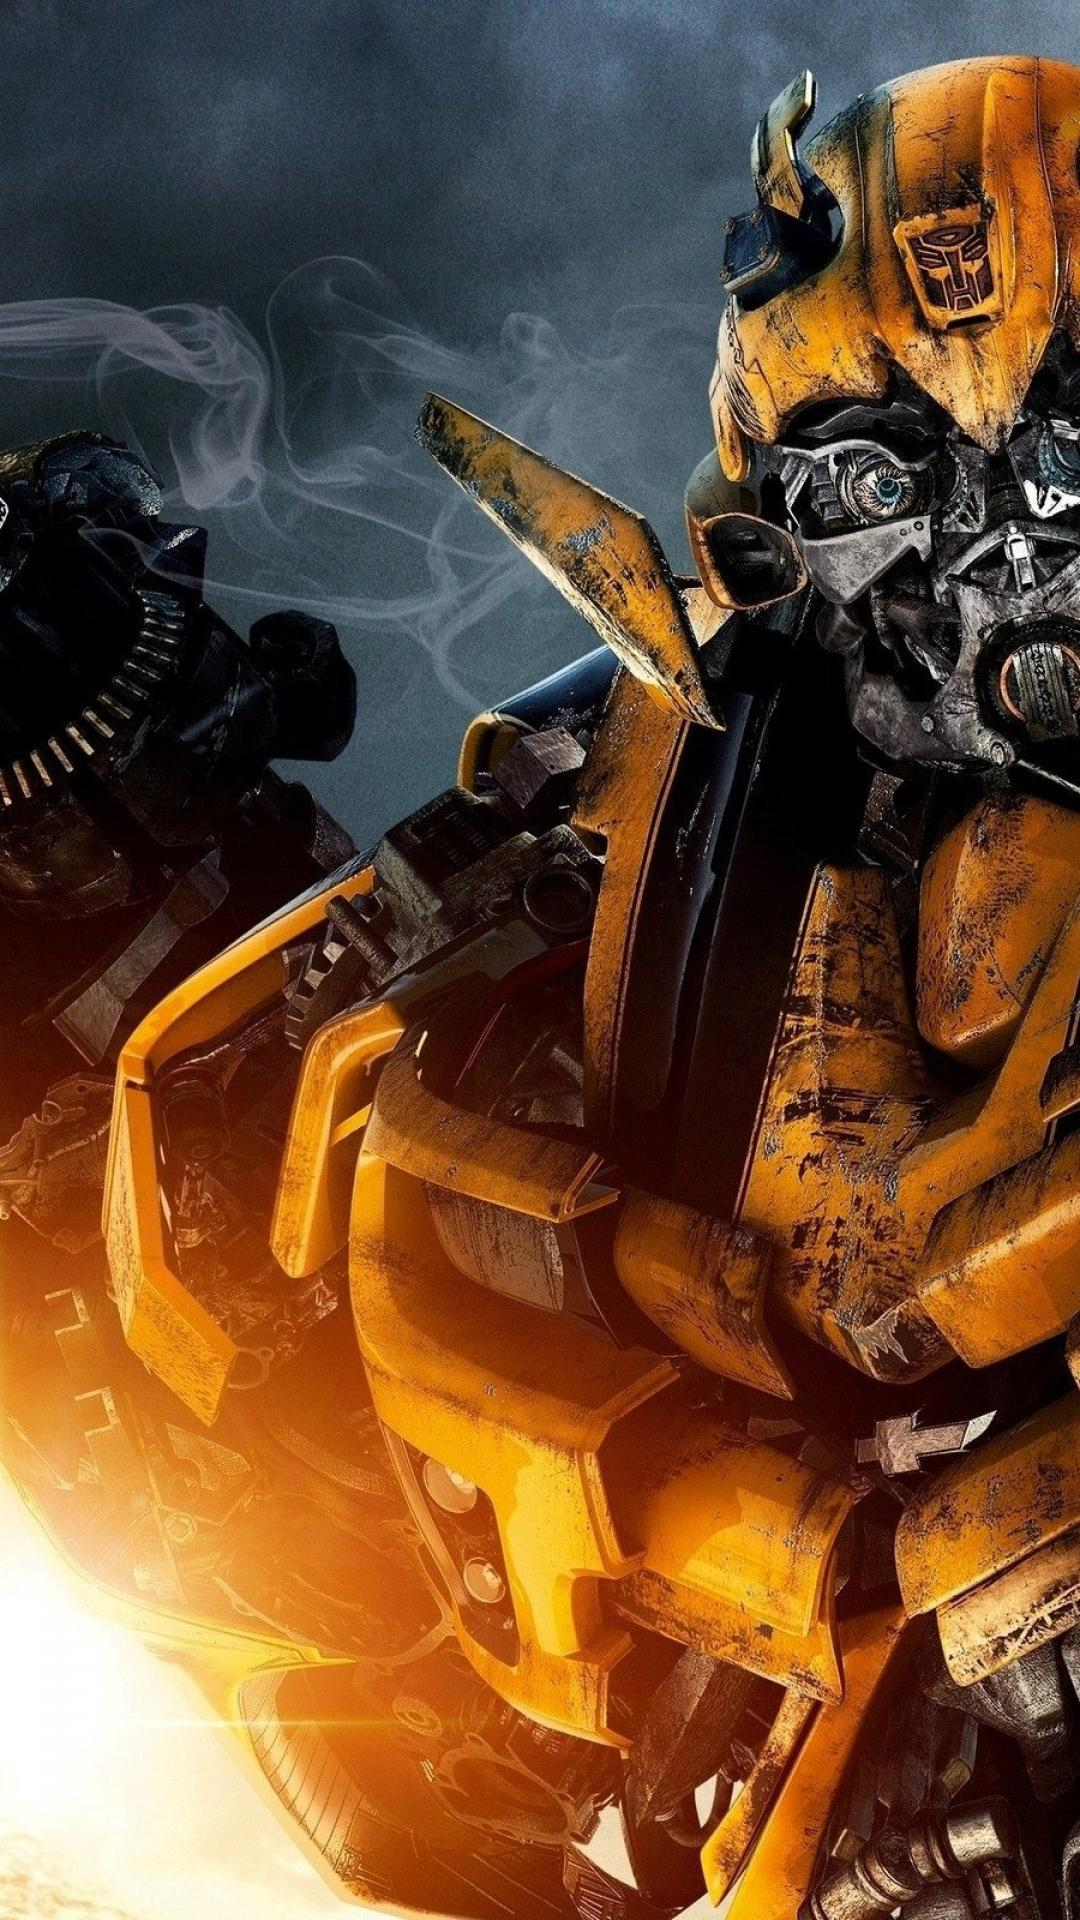 Download Transformers Hd Wallpapers For Iphone